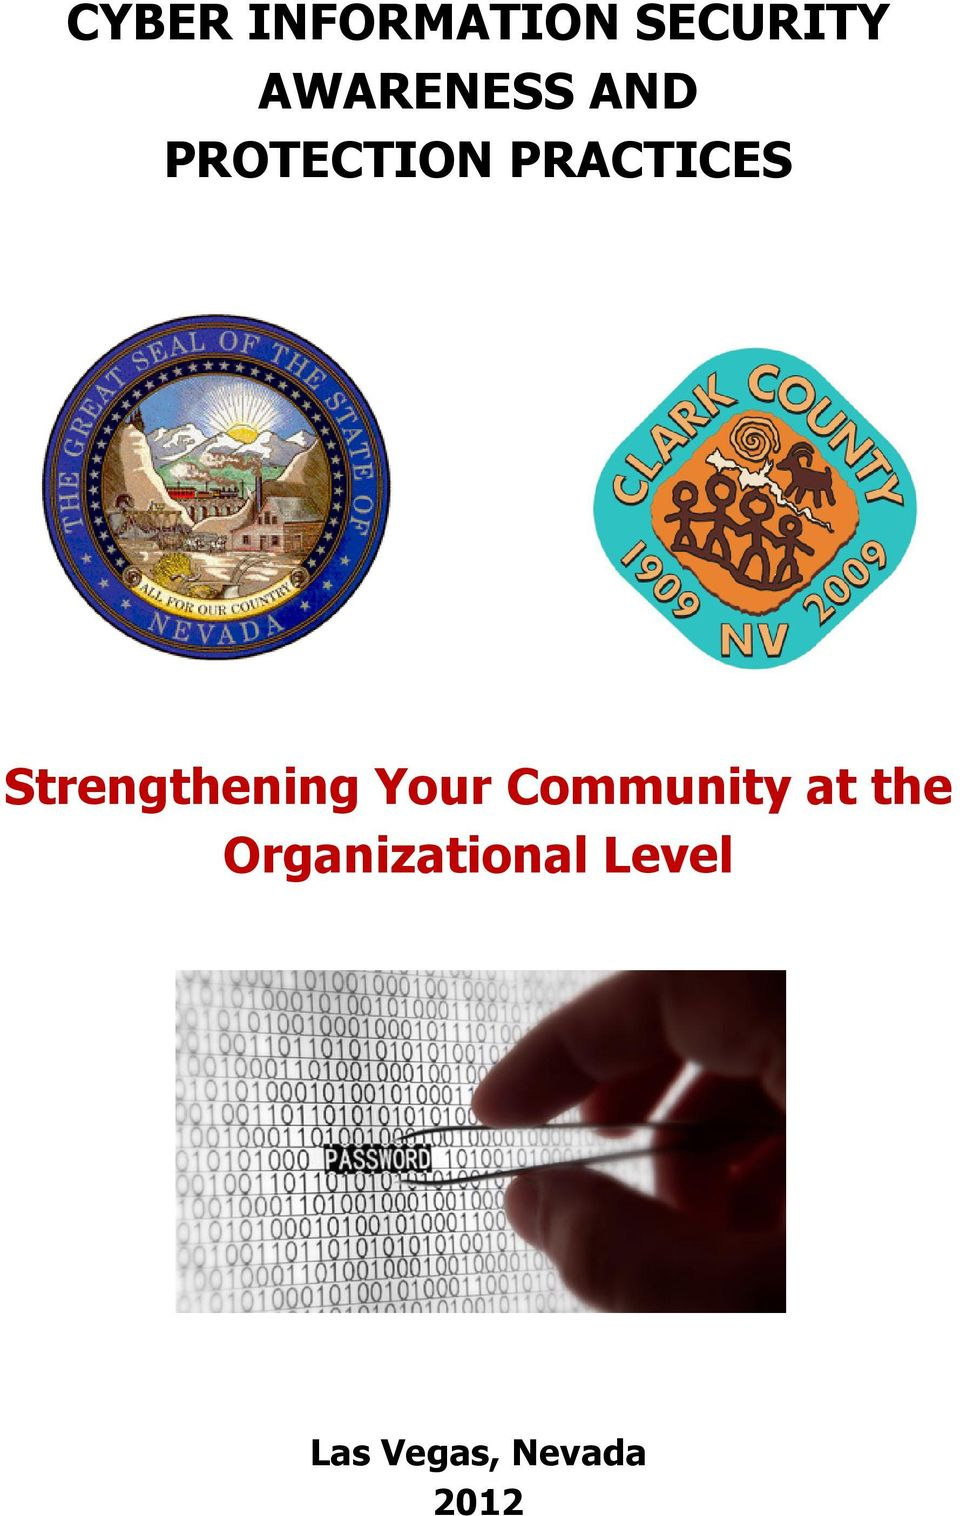 Strengthening Your Community at the